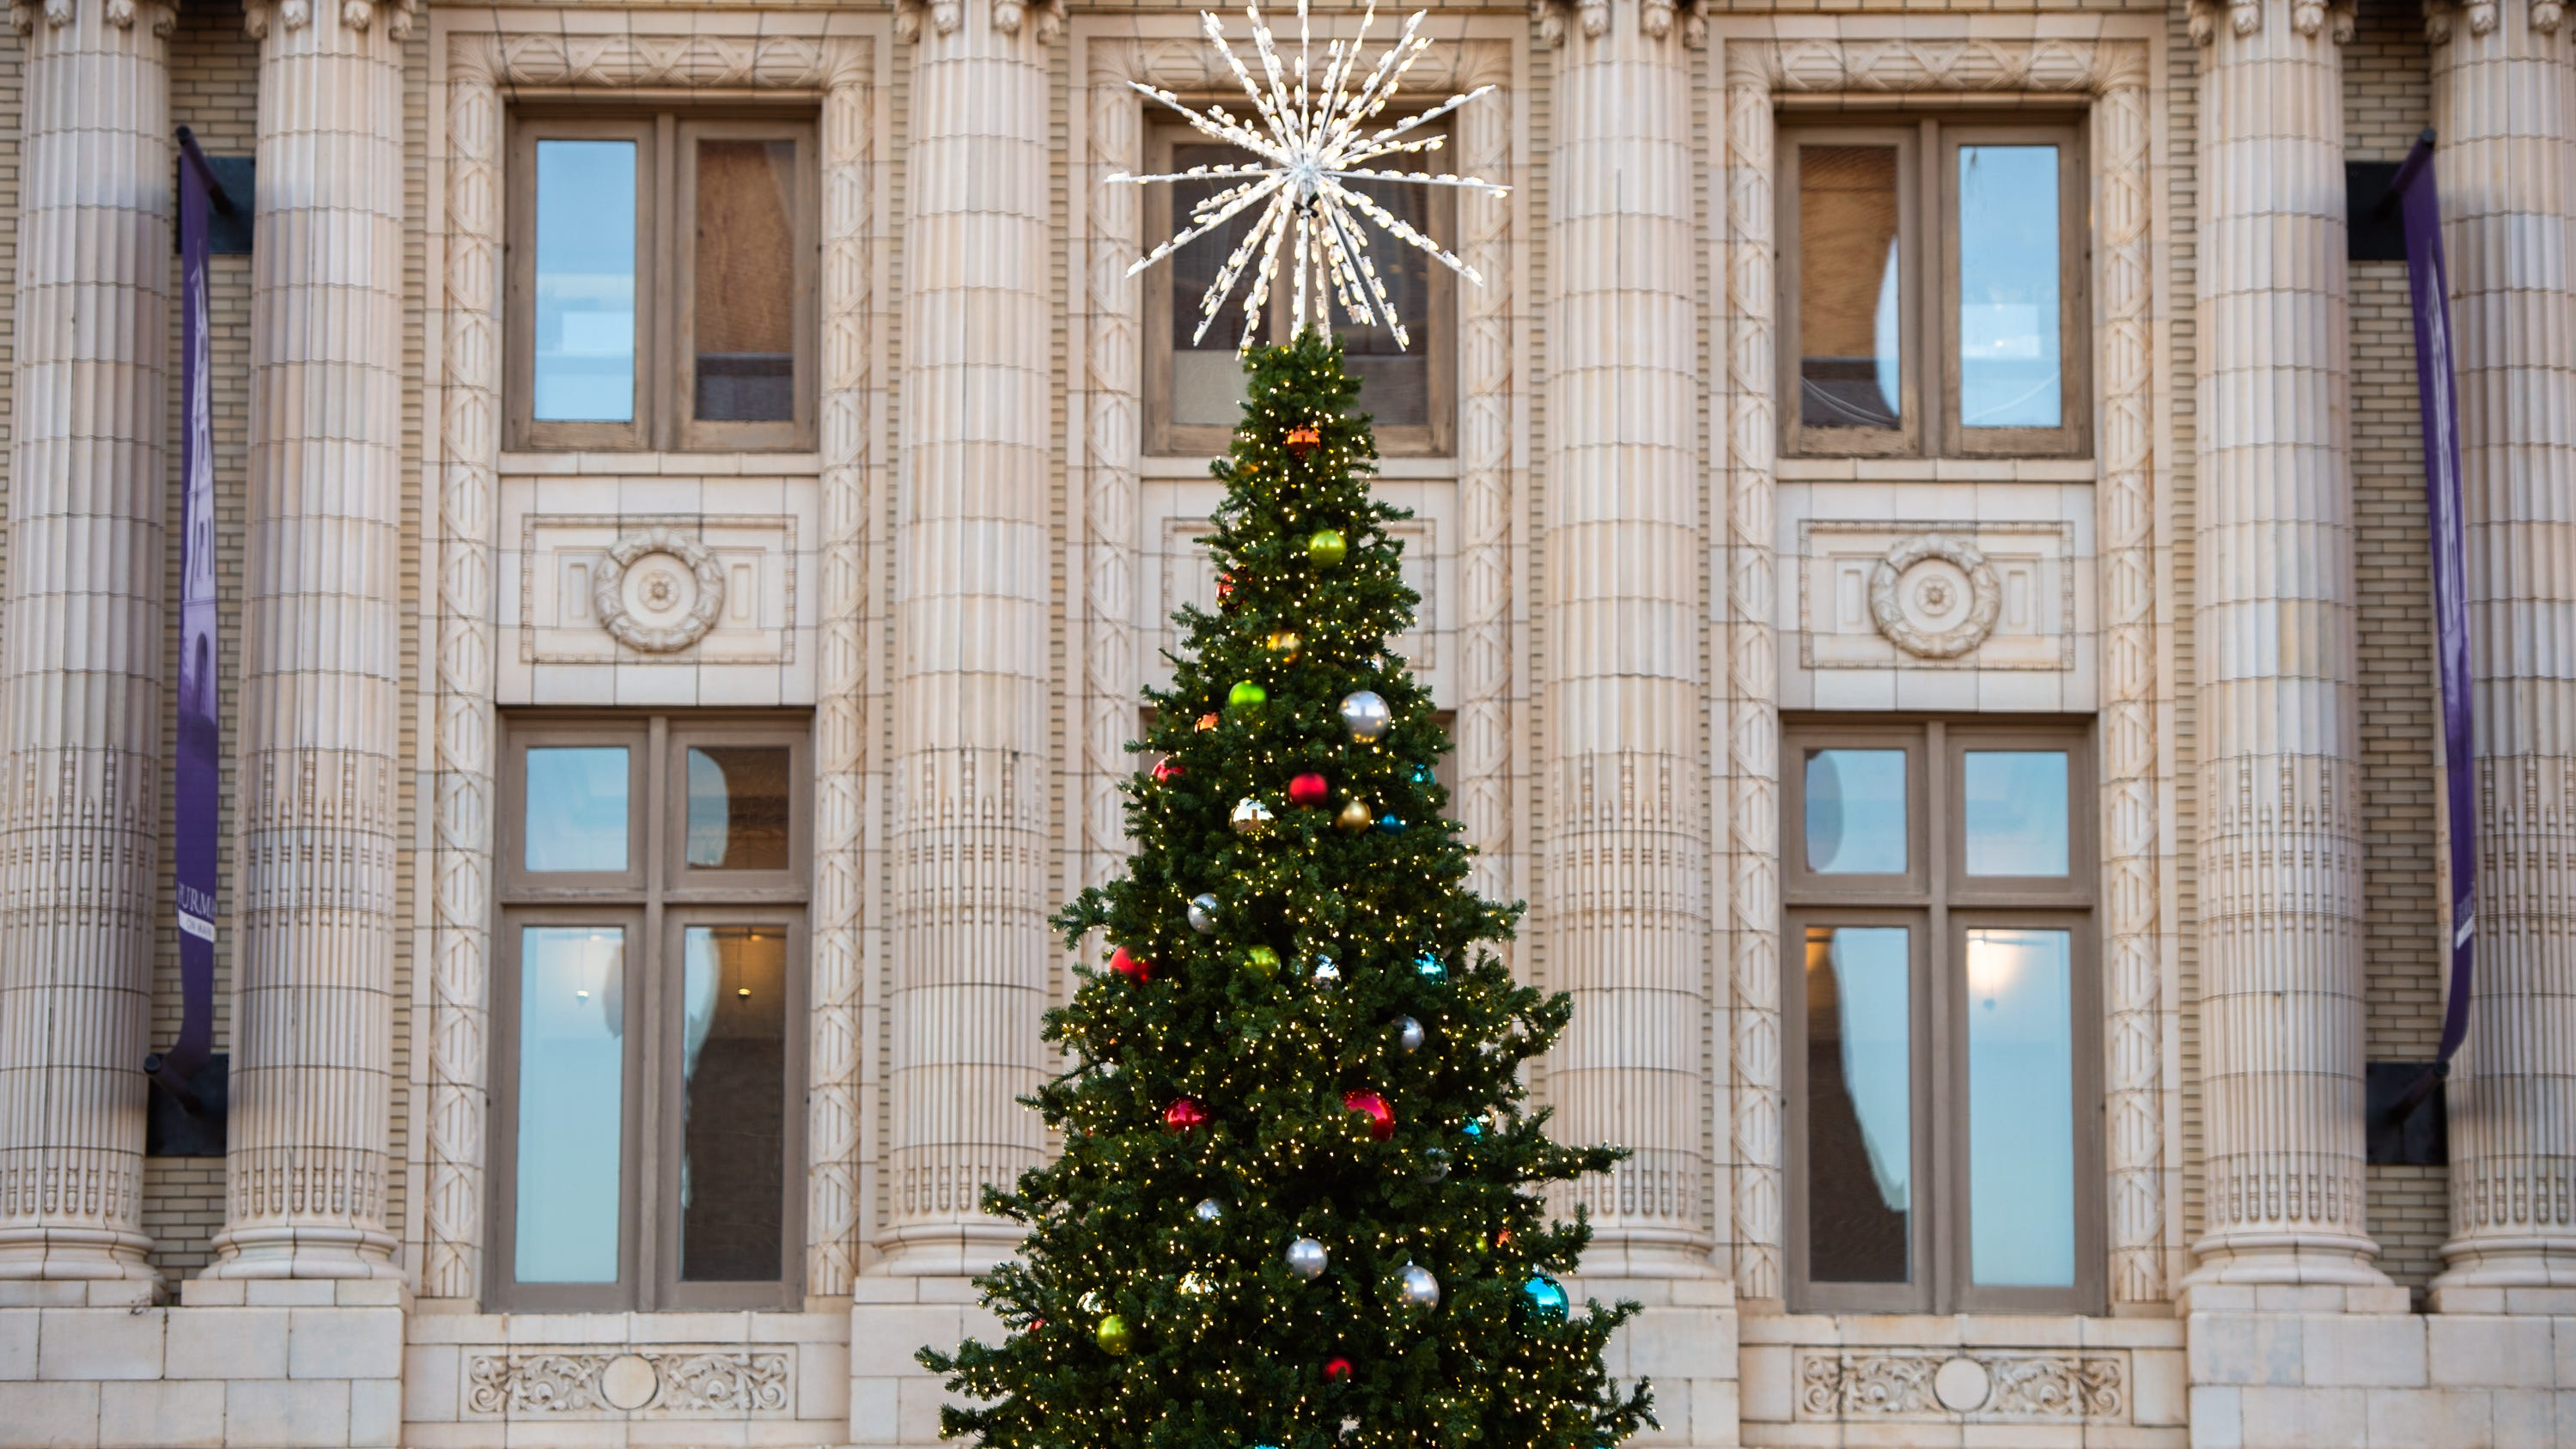 Christmas Events Greenville Sc 2021 Where To Find Christmas Lights Holiday Fun In The Upstate This Year